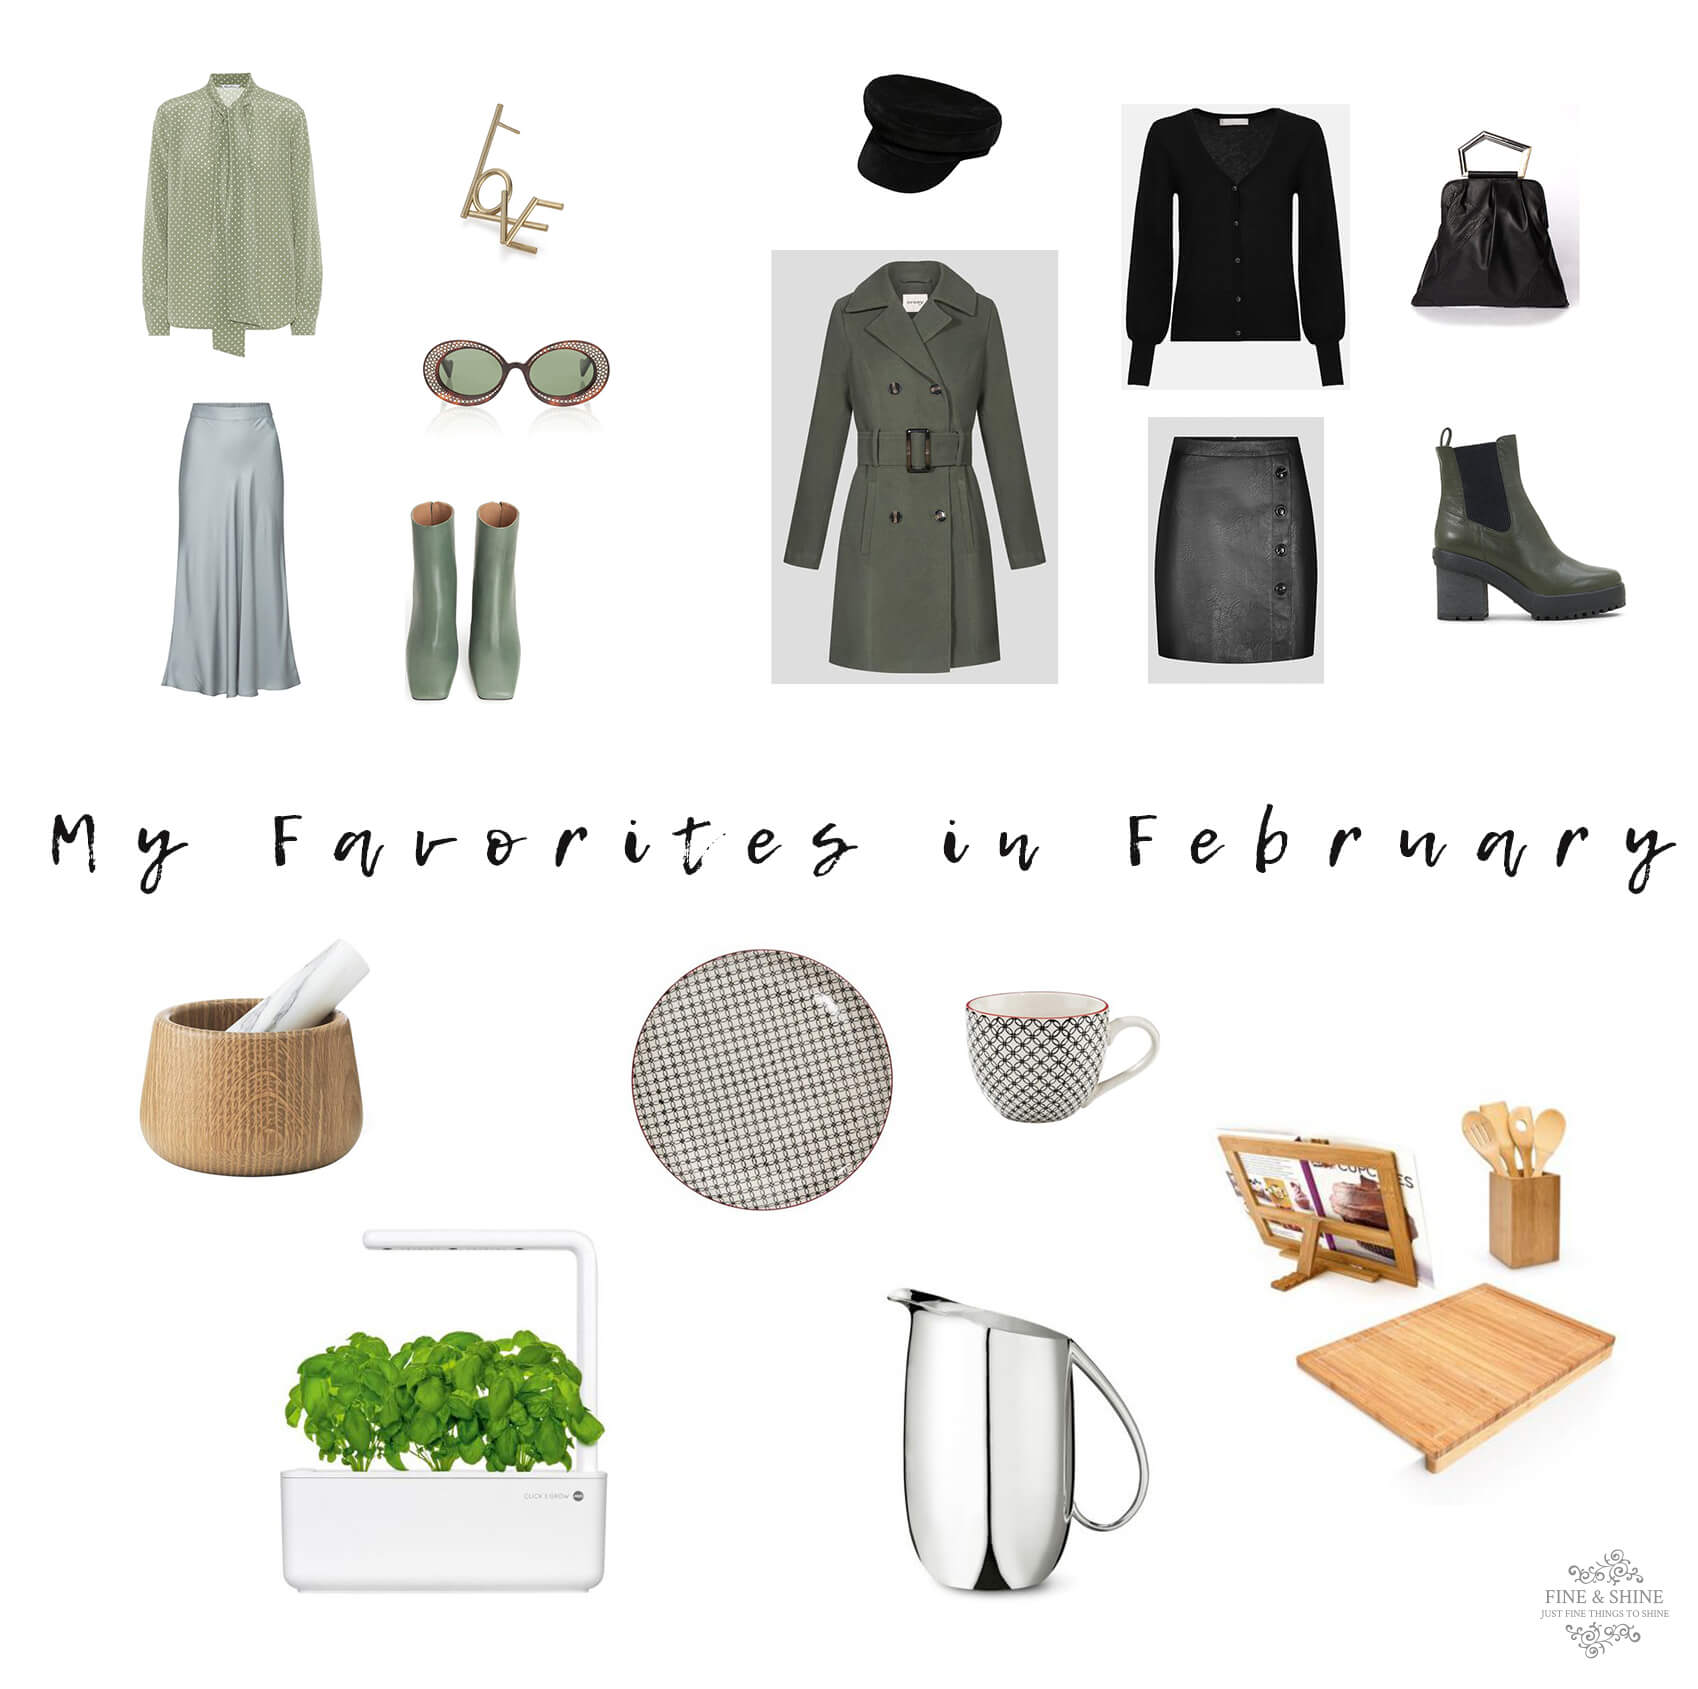 My Favorites in February